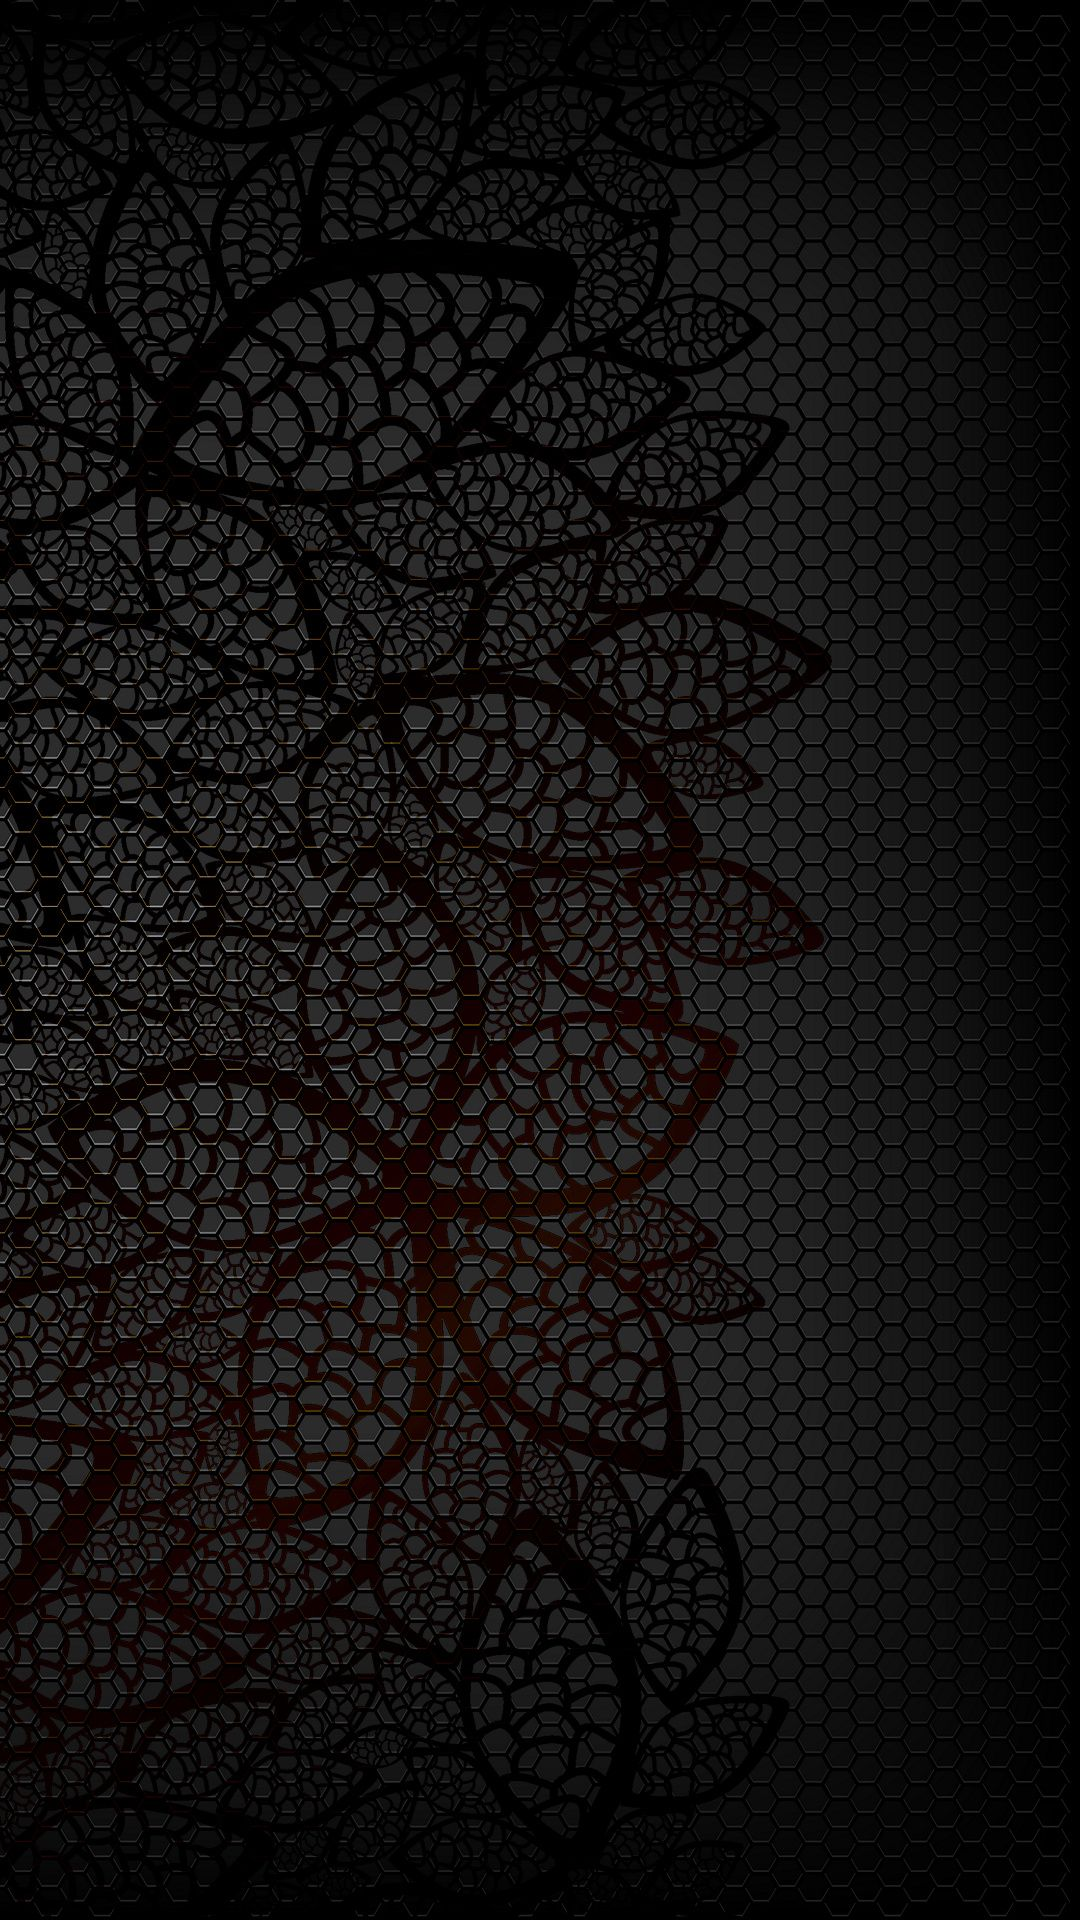 Pin By Adil On Tlo Czarne I Szare Black And Gray Background Xperia Wallpaper Iphone Wallpaper Black Wallpaper